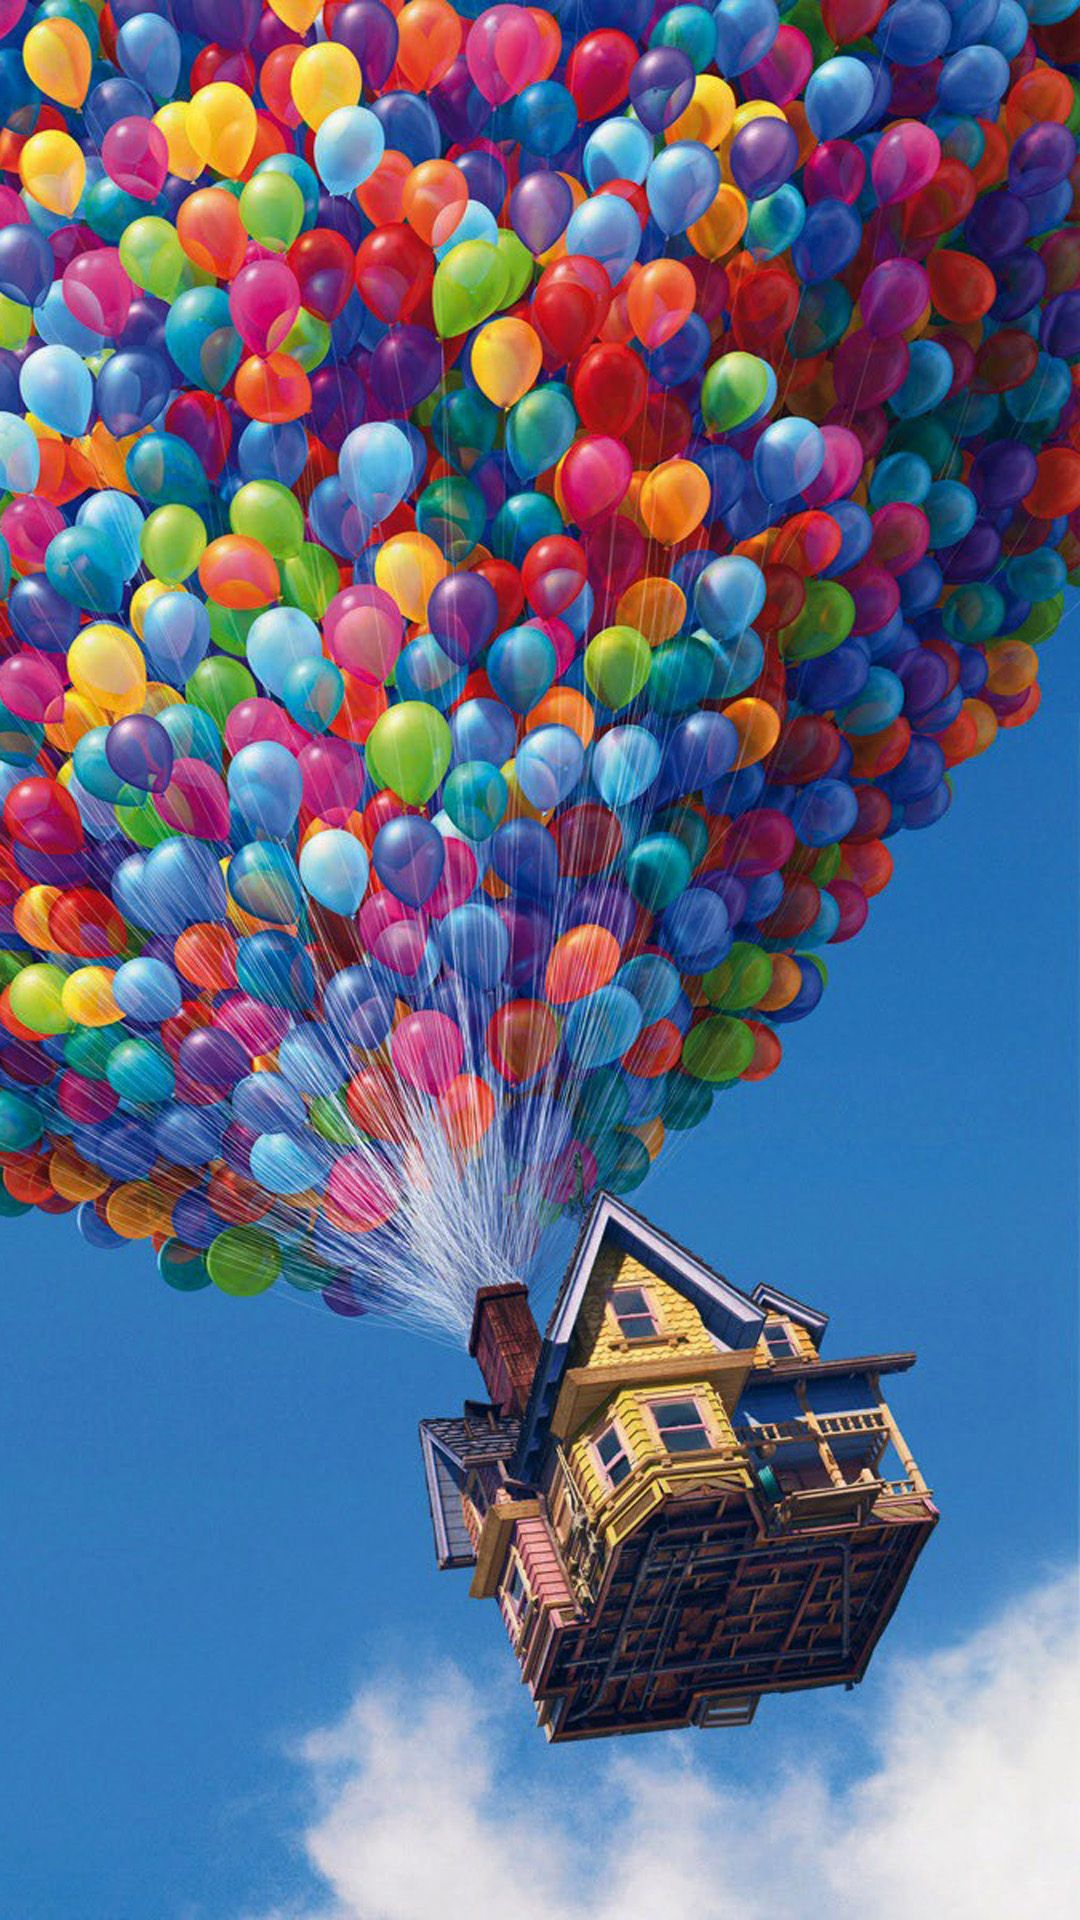 Hd wallpaper for smartphone - Colorful Balloons Hd Smartphone Wallpapers 1080x1920 01 Jpg 1080 1920